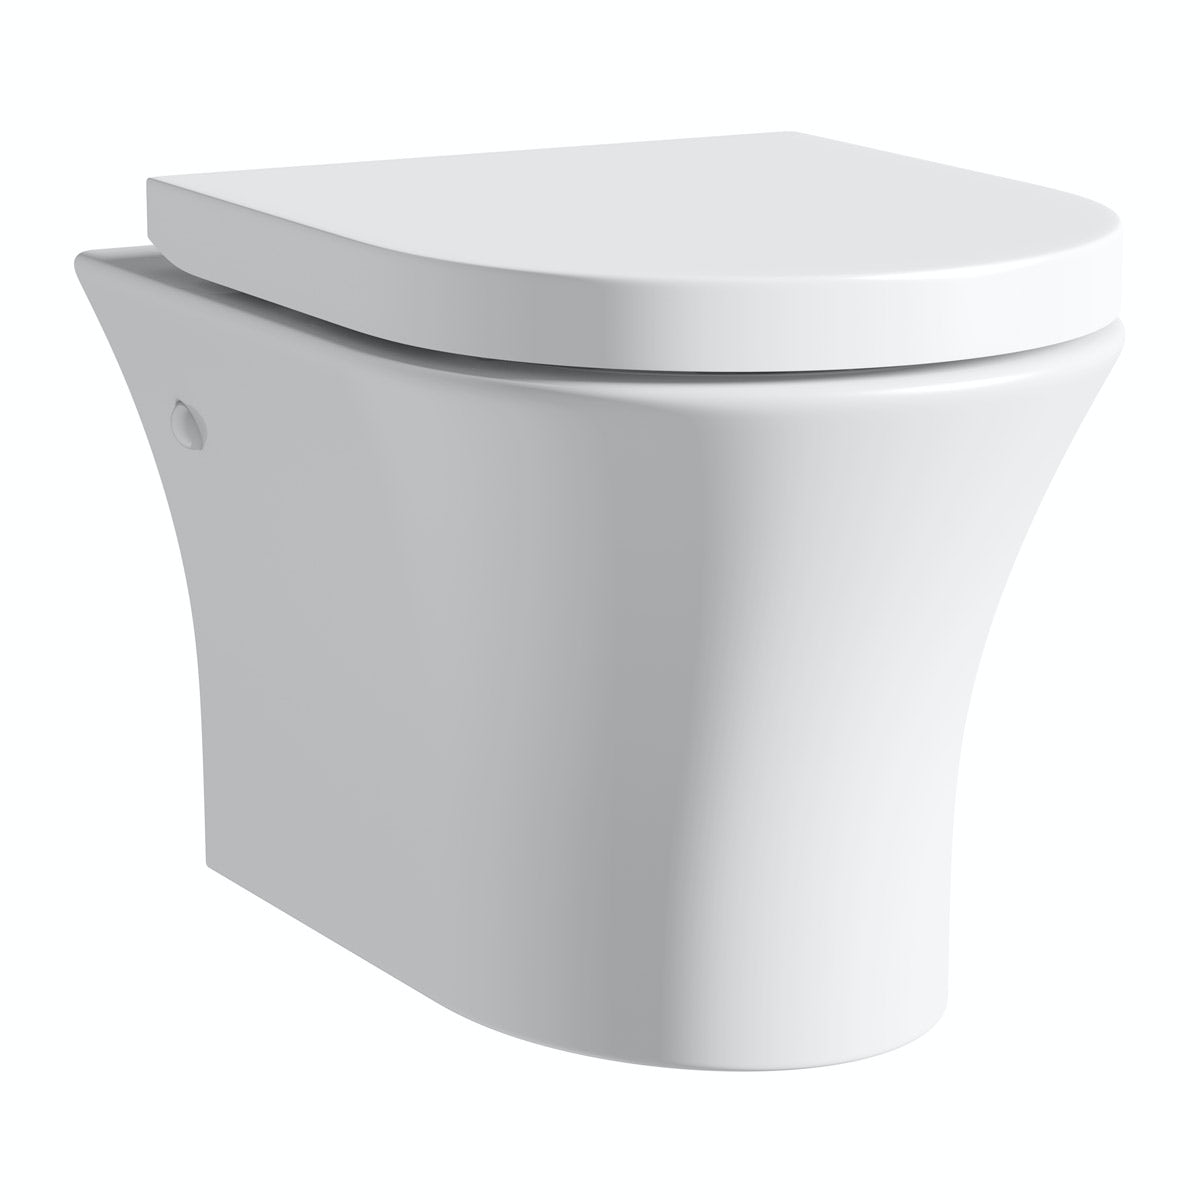 Mode Hardy rimless wall hung toilet with soft close seat